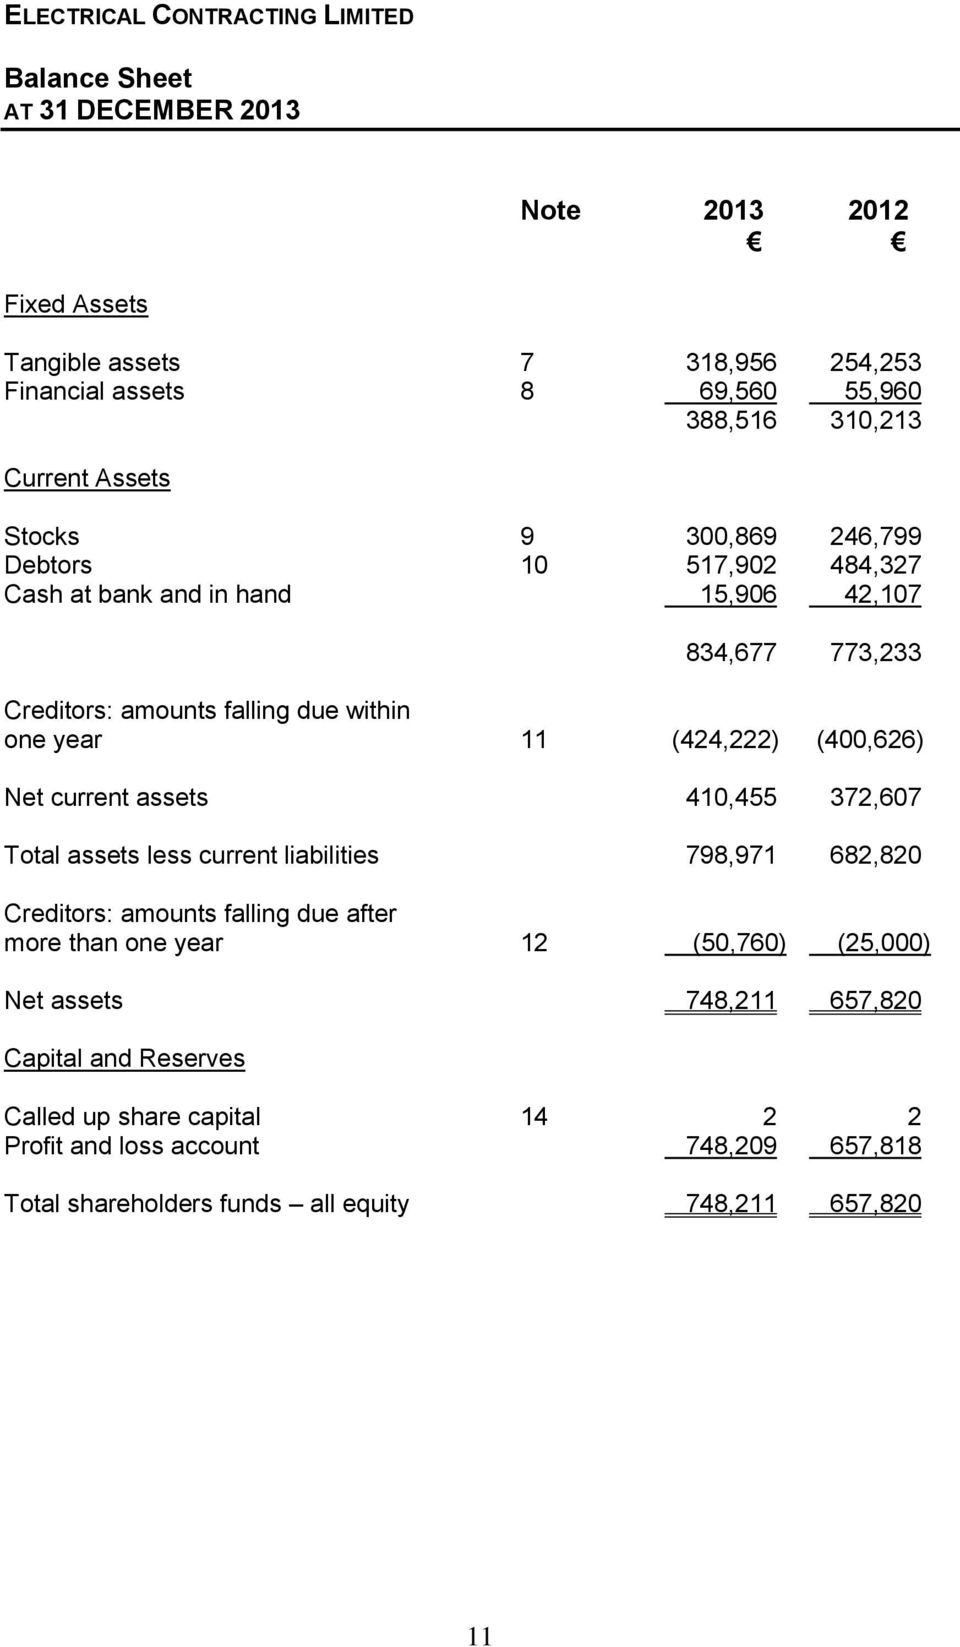 current assets 410,455 372,607 Total assets less current liabilities 798,971 682,820 Creditors: amounts falling due after more than one year 12 (50,760) (25,000) Net